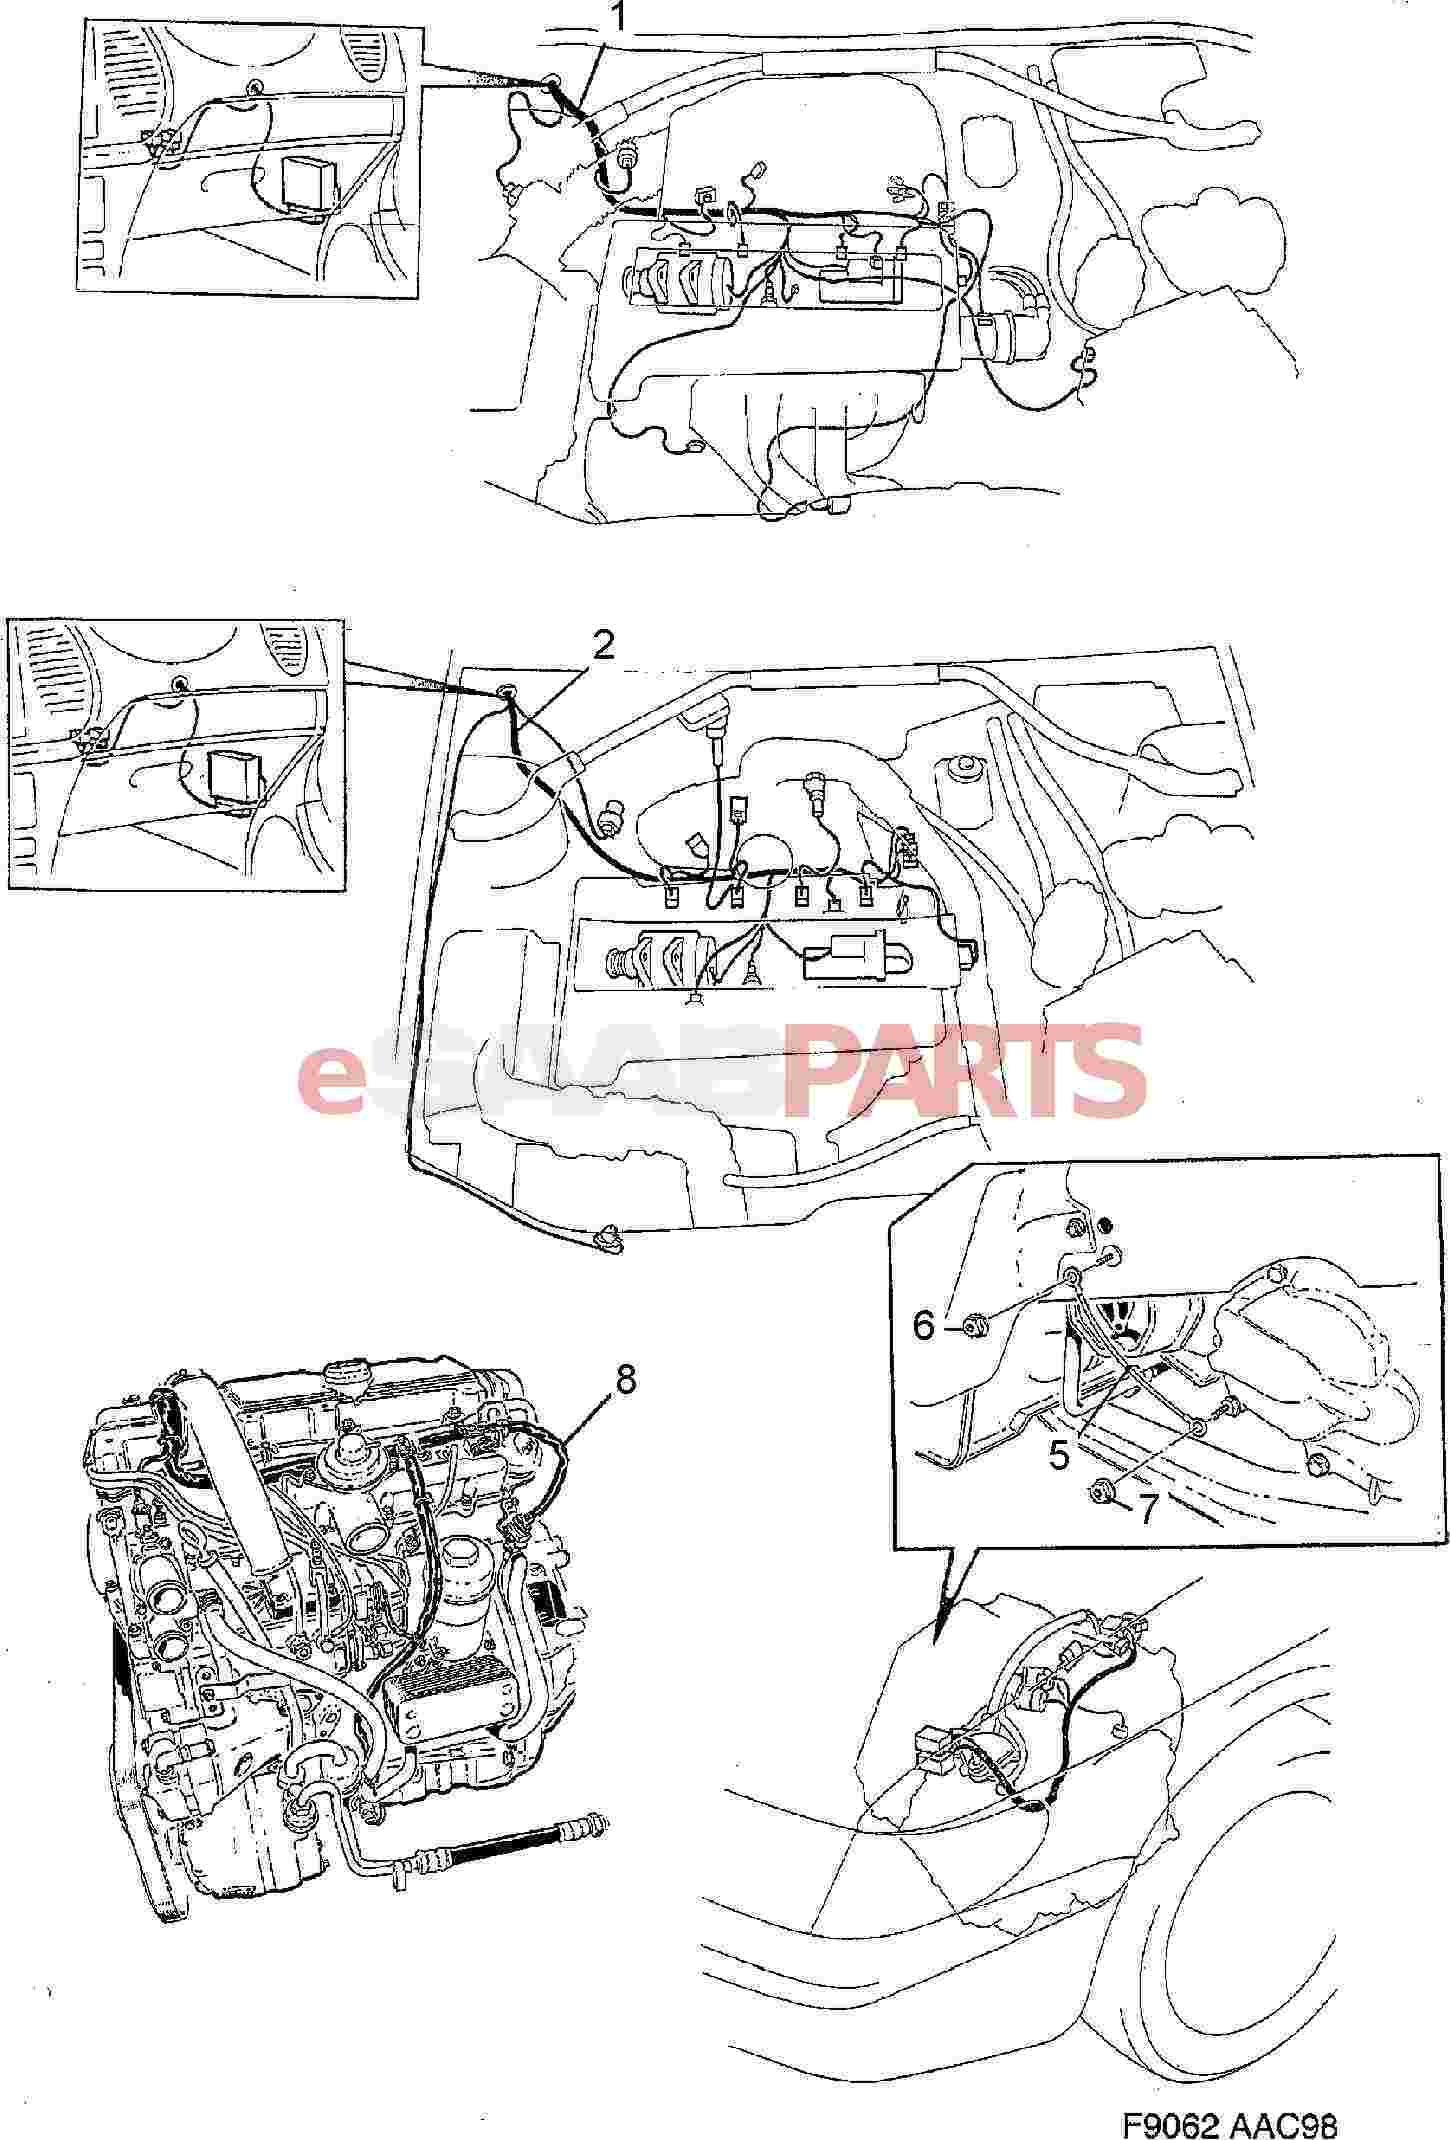 Service manual [1984 Saab 900 Engine Diagram Or Manual